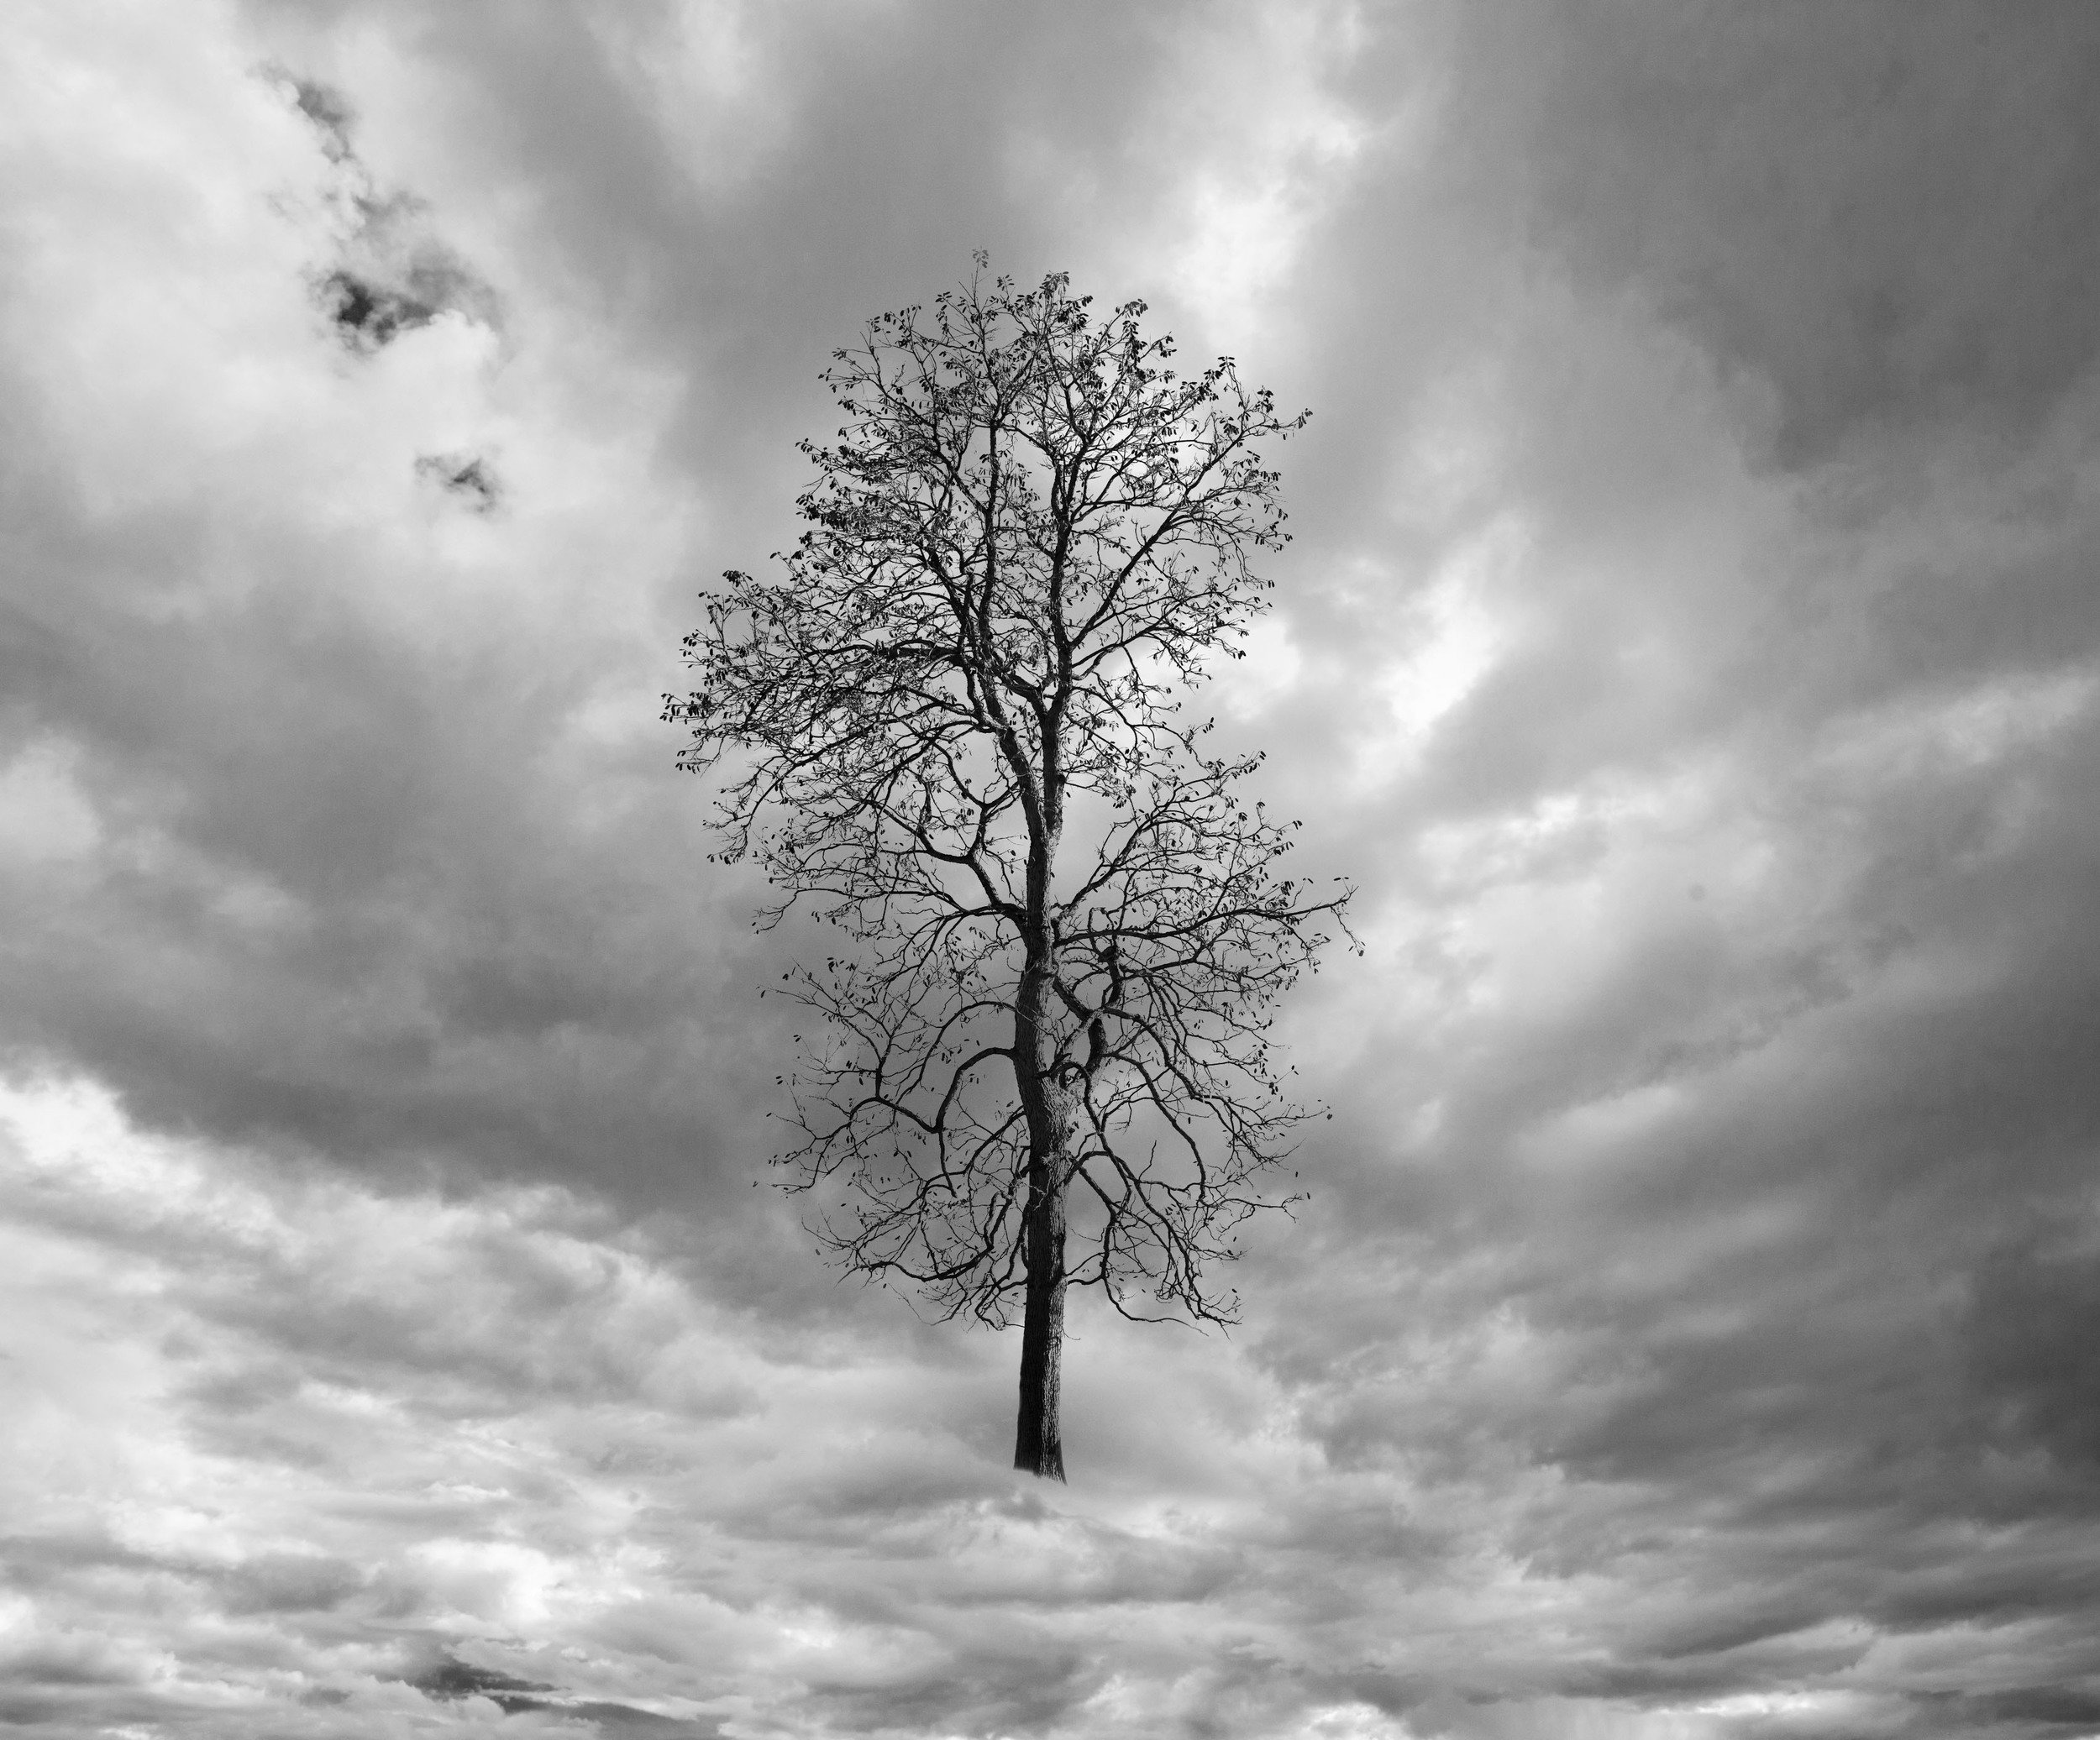 Tree in Clouds